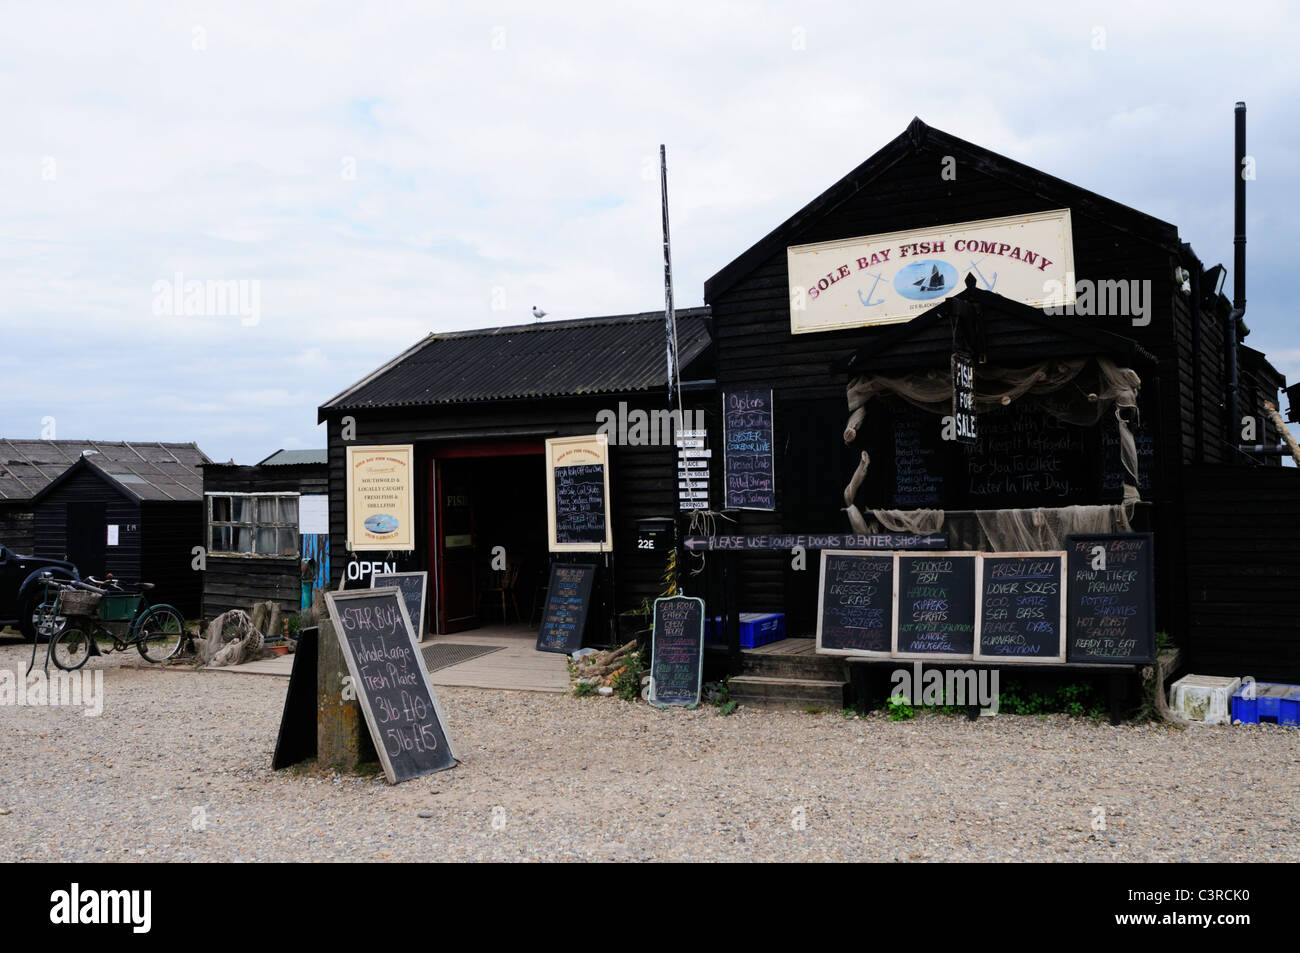 Sole Bay Fish Company Shop, Southwold Harbour, Suffolk, England, UK - Stock Image